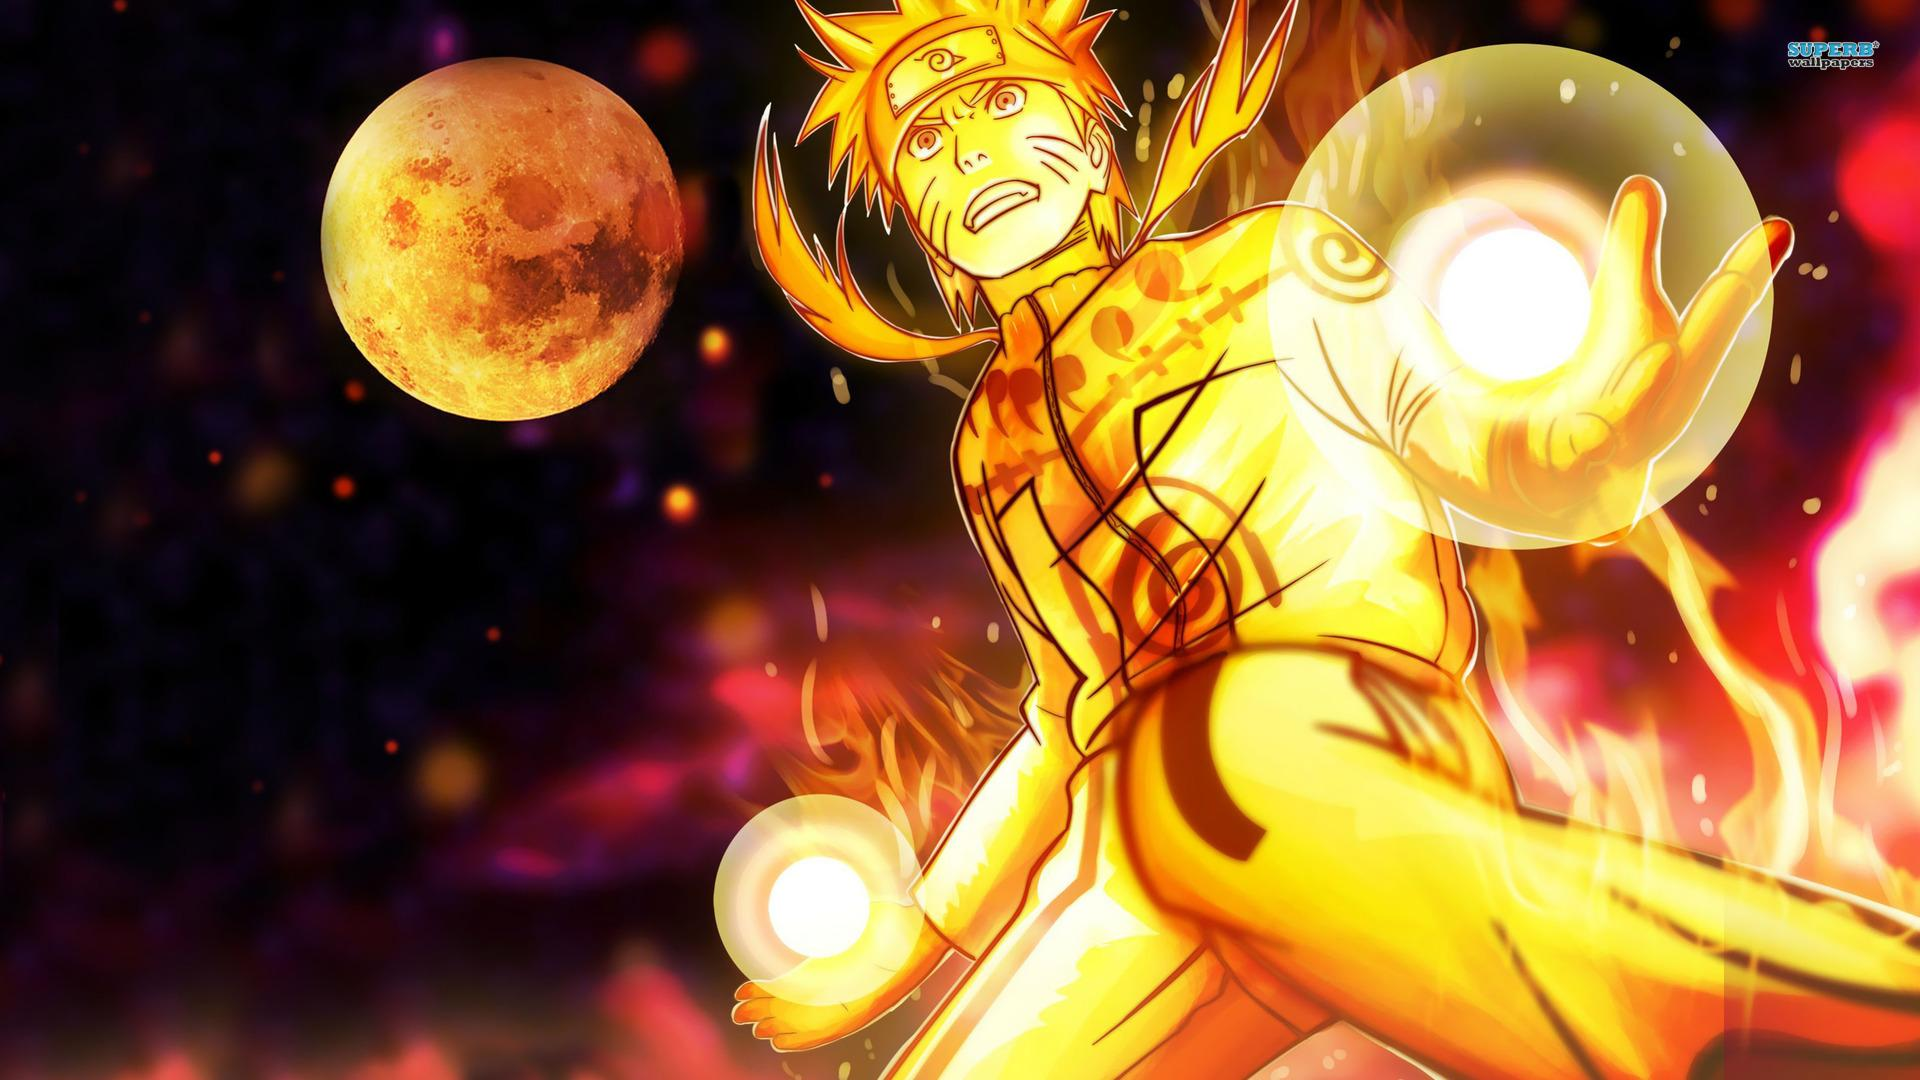 High Definition Naruto Wallpapers - WallpaperSafari |Naruto High Quality Wallpaper